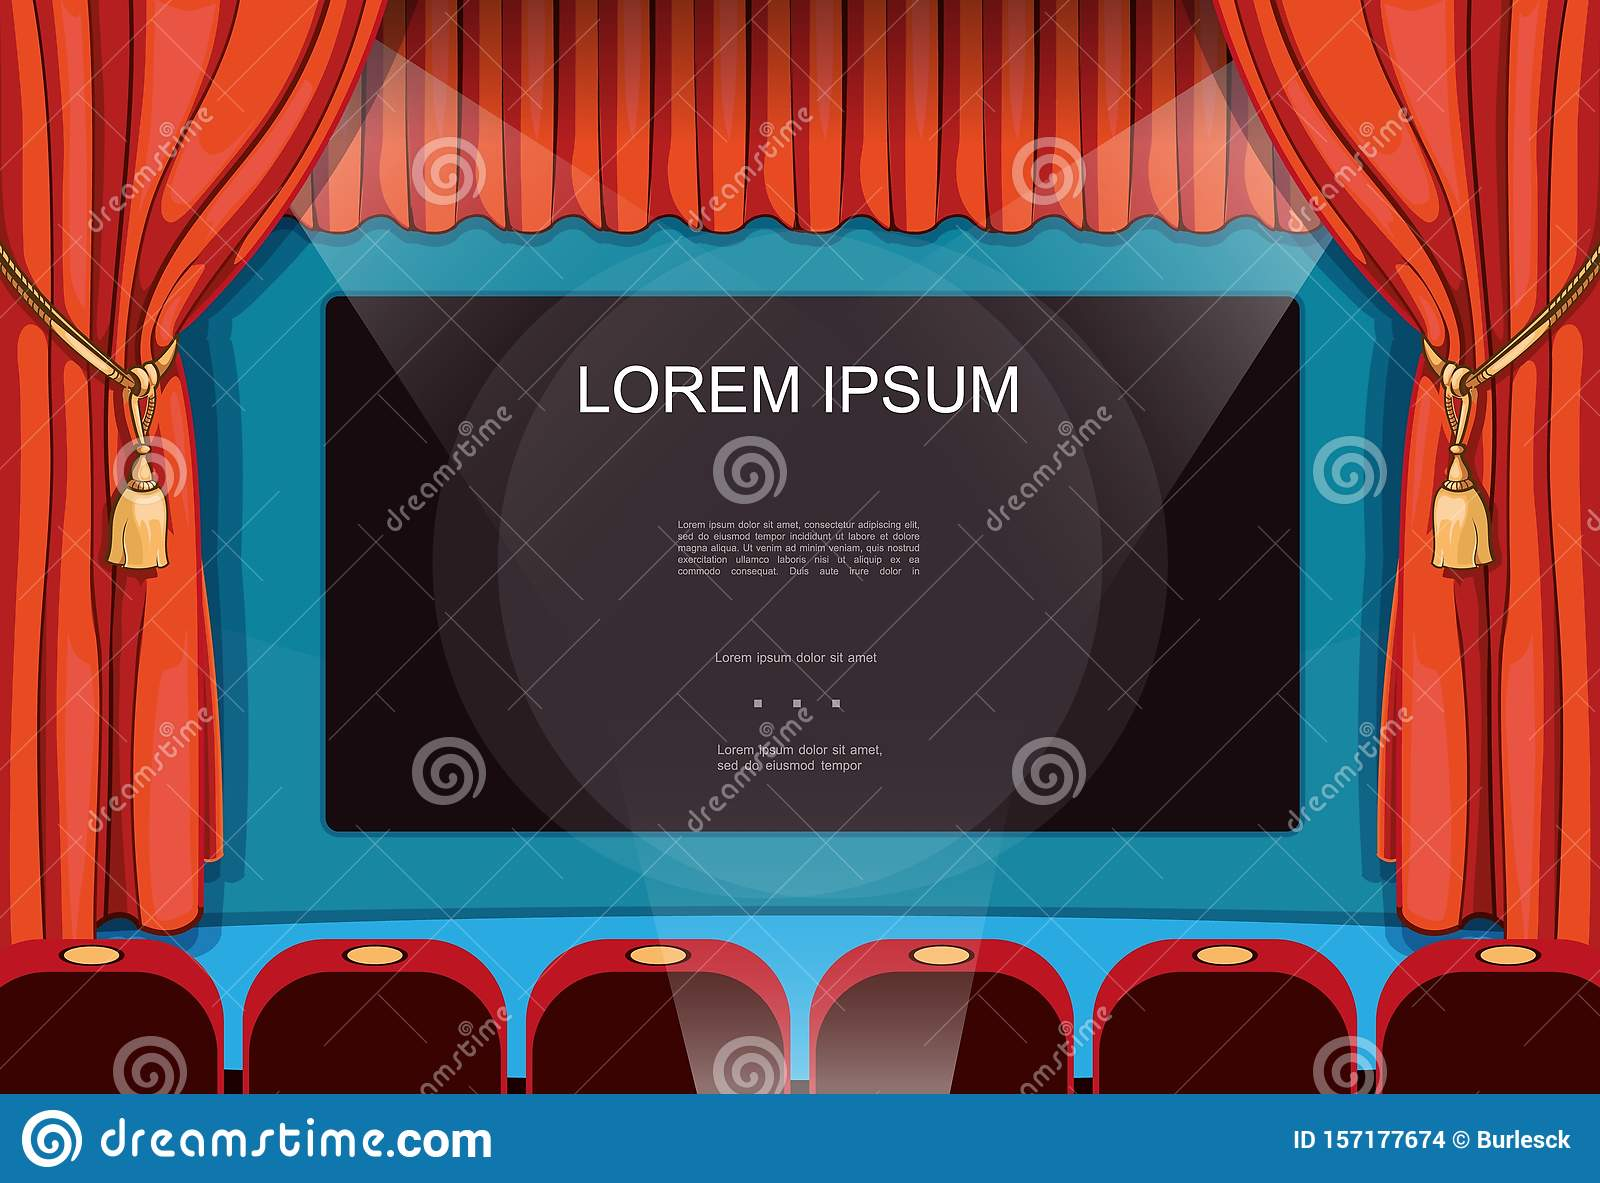 Cartoon Movie Premiere Concept Stock Vector Illustration Of Cinema Decor 157177674